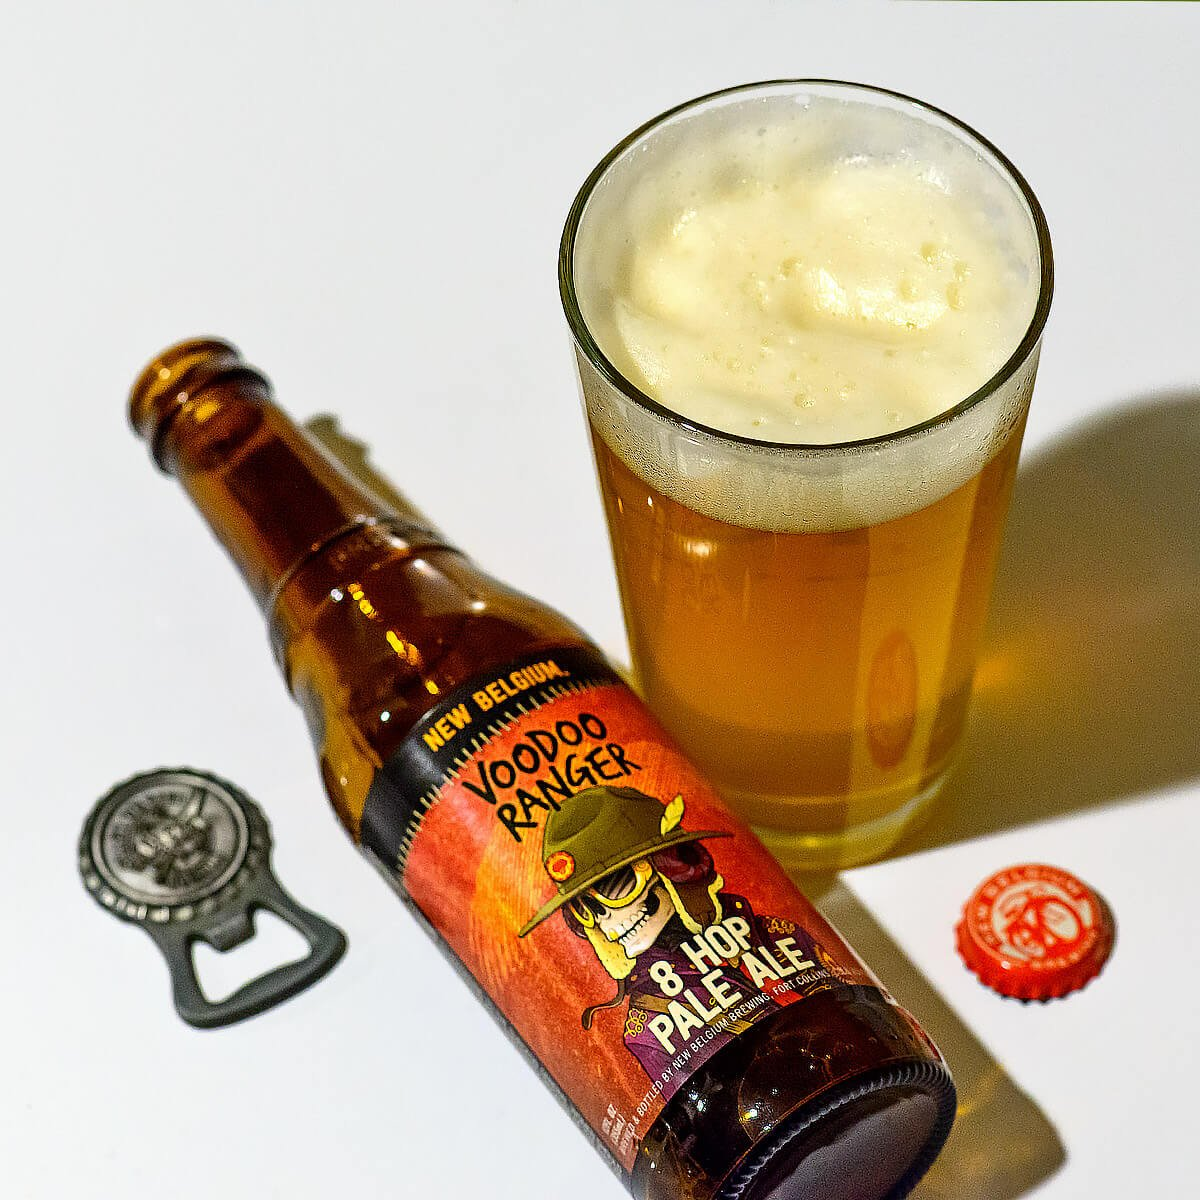 Voodoo Ranger 8 Hop Pale Ale, an American Pale Ale by New Belgium Brewing Company